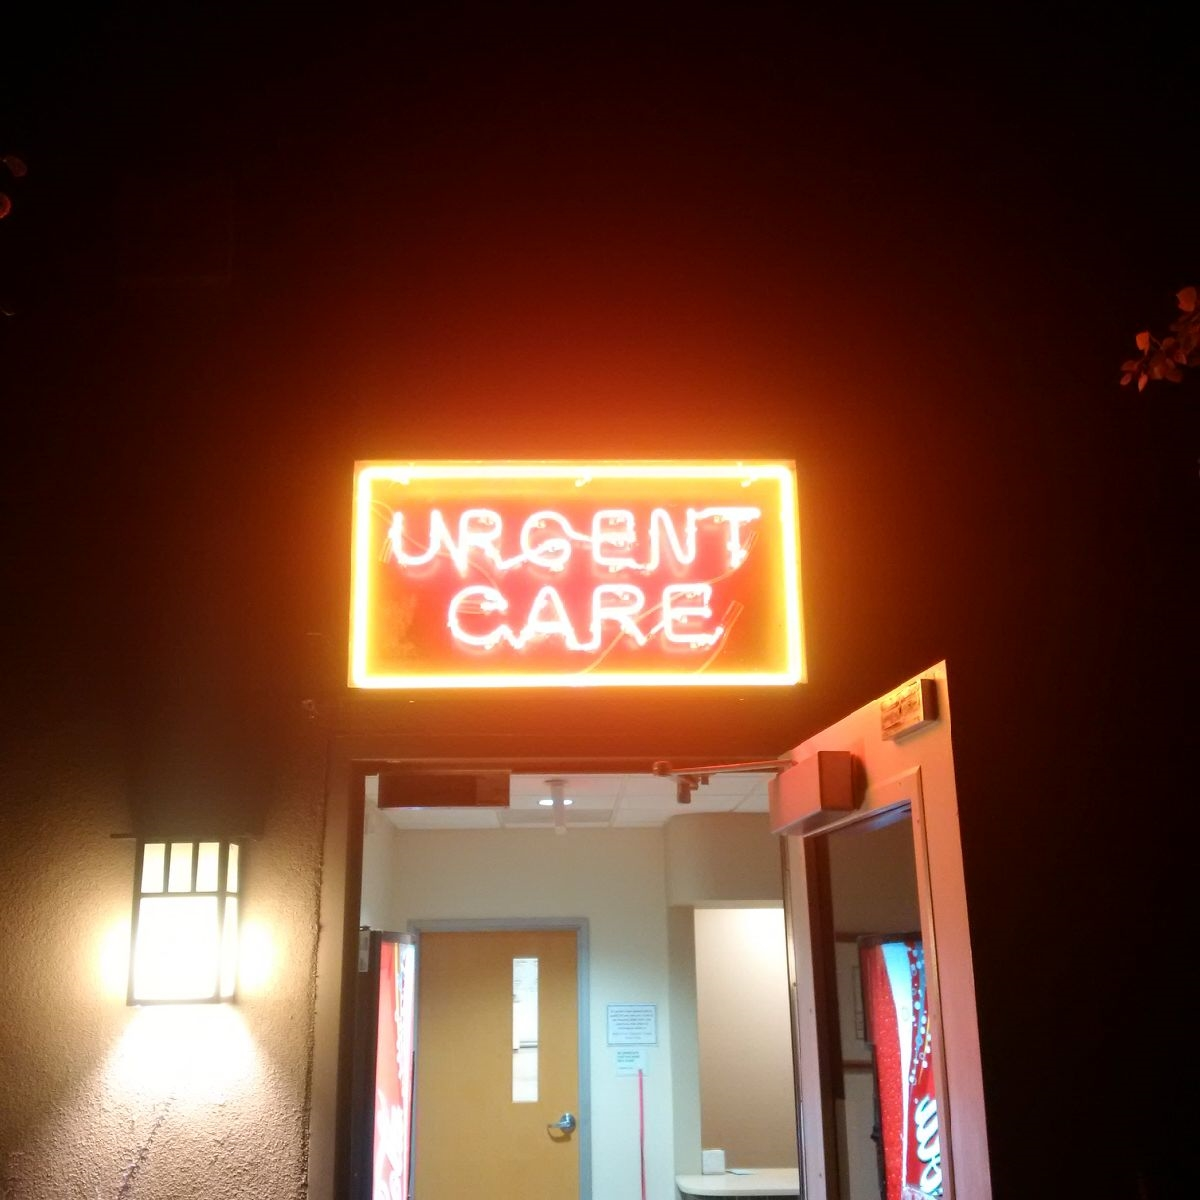 Urgent Care entrance and sign